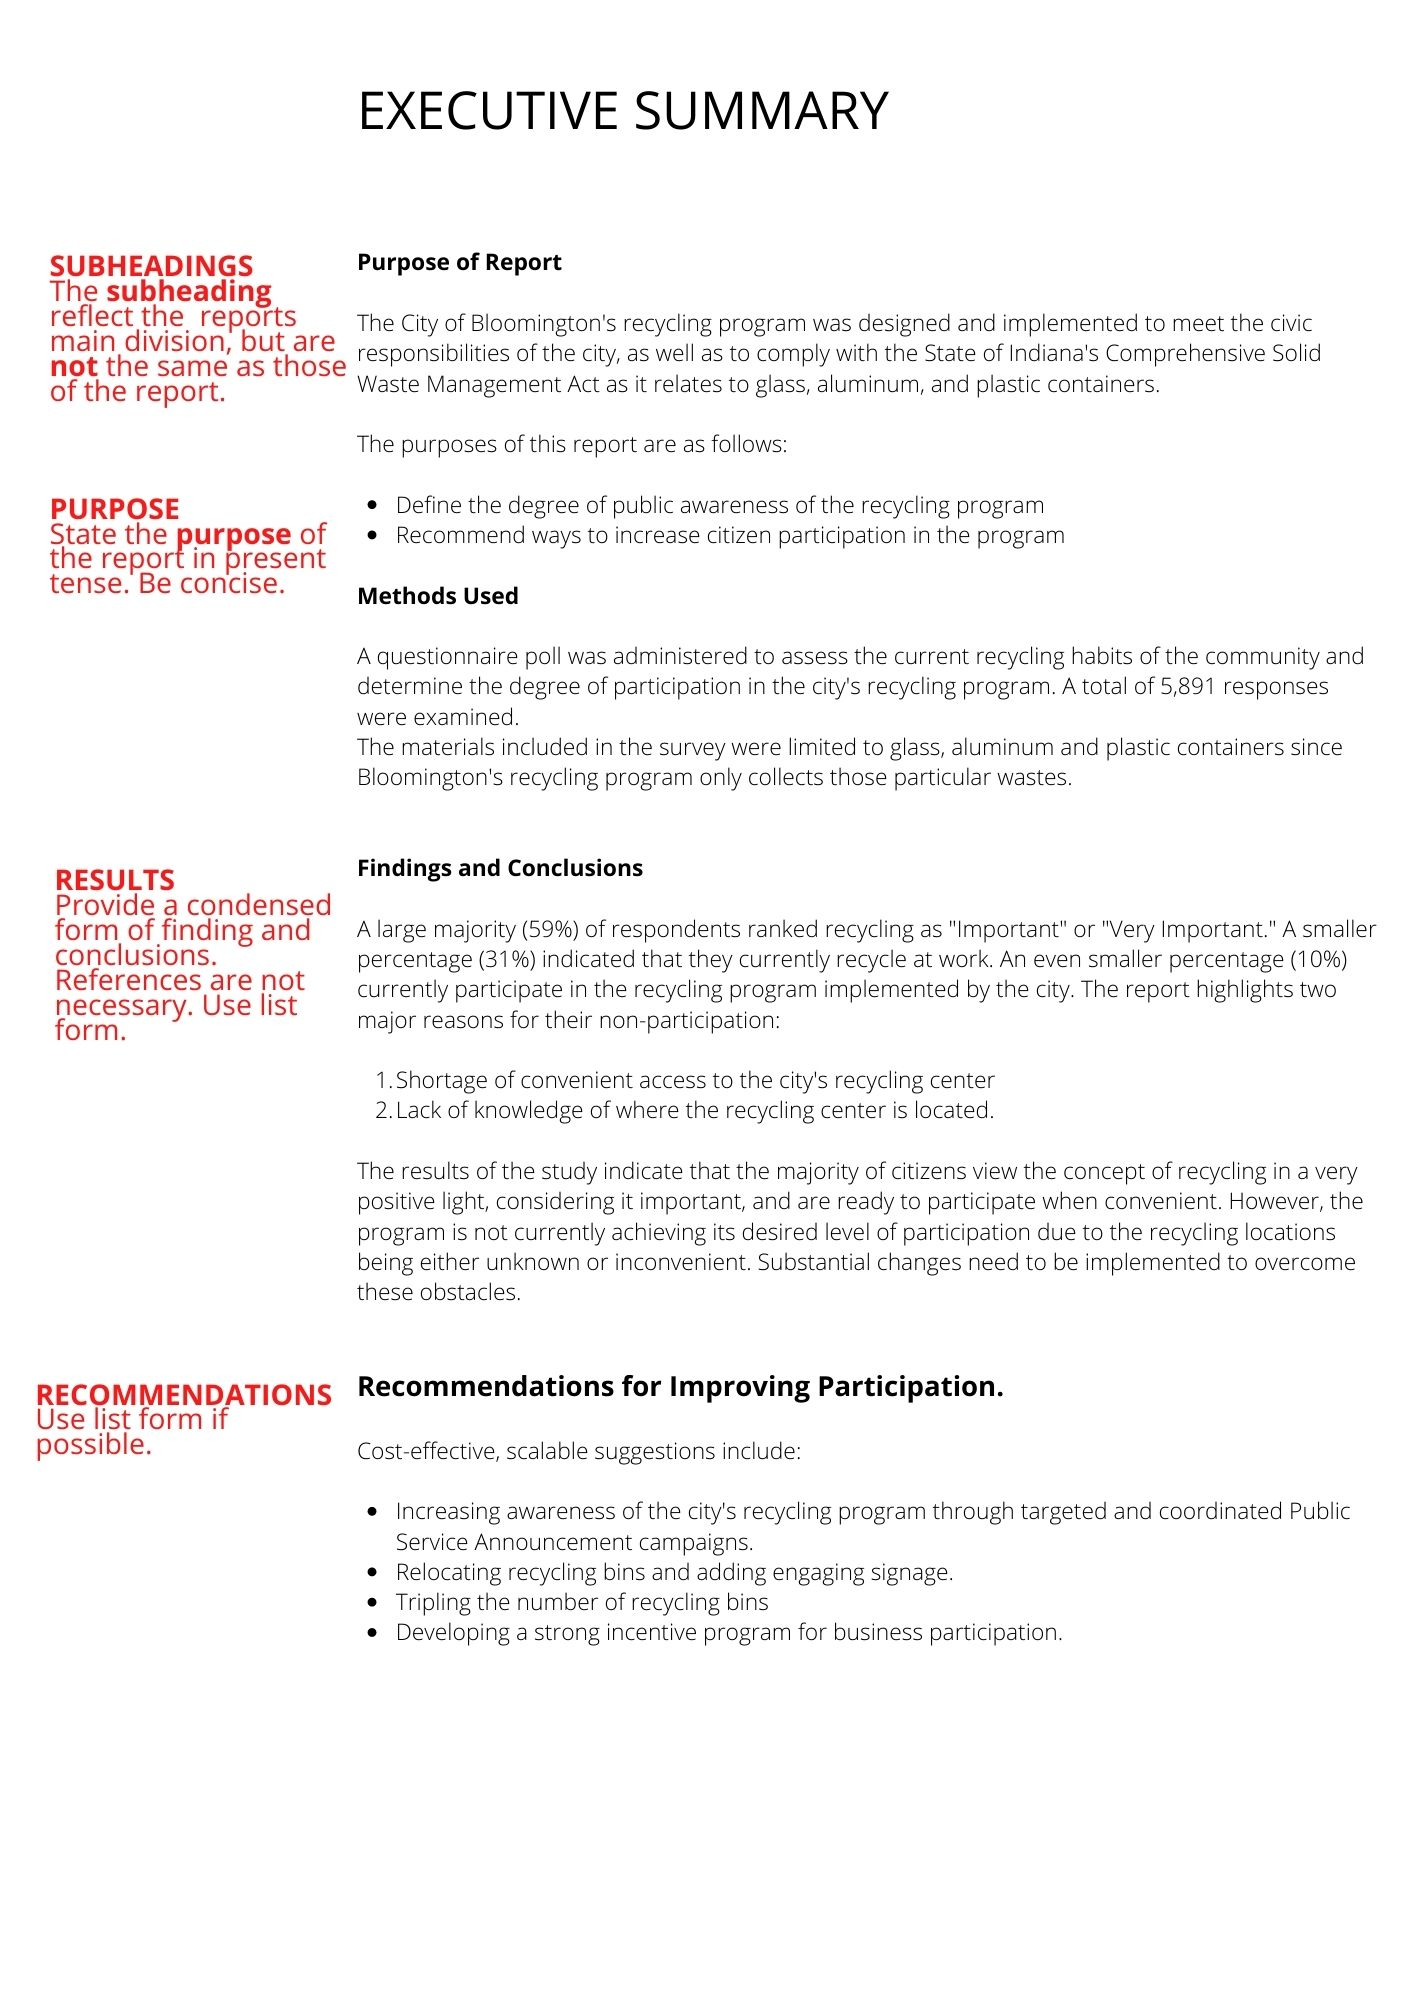 An example of an executive summary of a report on participation in the newly-implemented recycling program by the city of Bloomington, IN